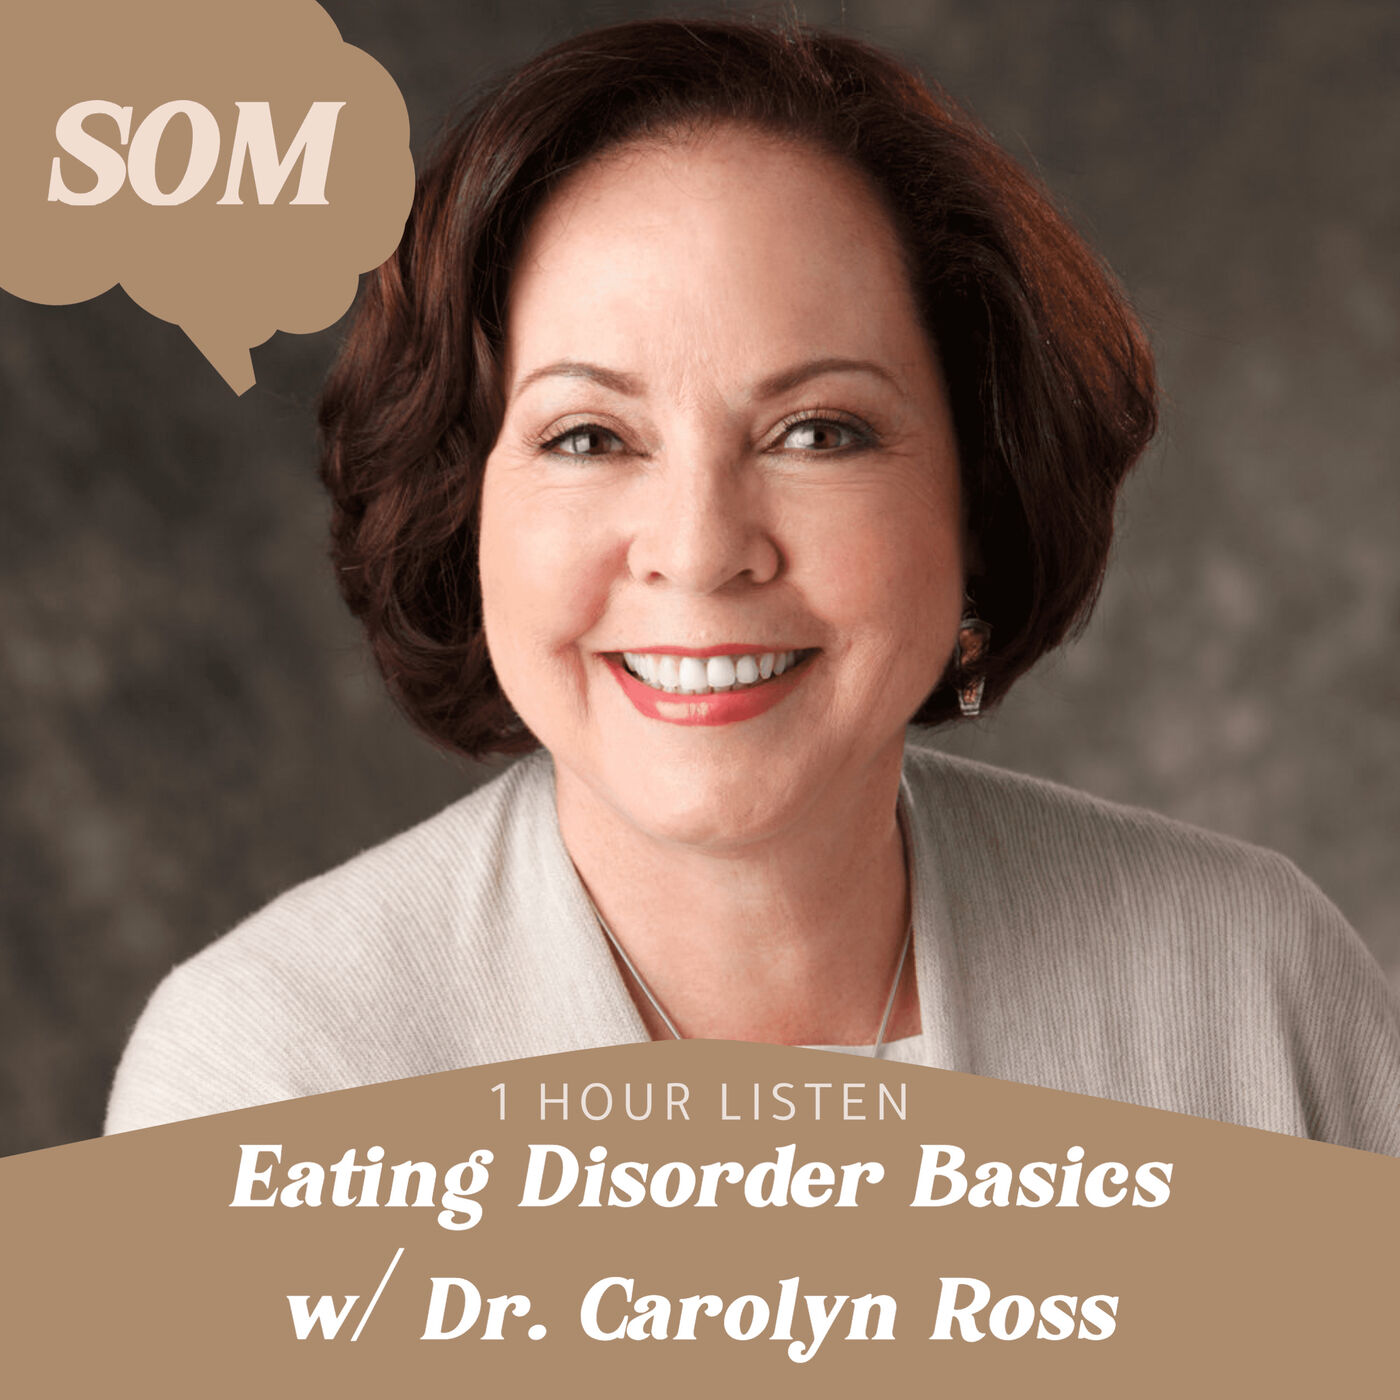 Eating Disorder Basics w/ Dr. Carolyn Ross